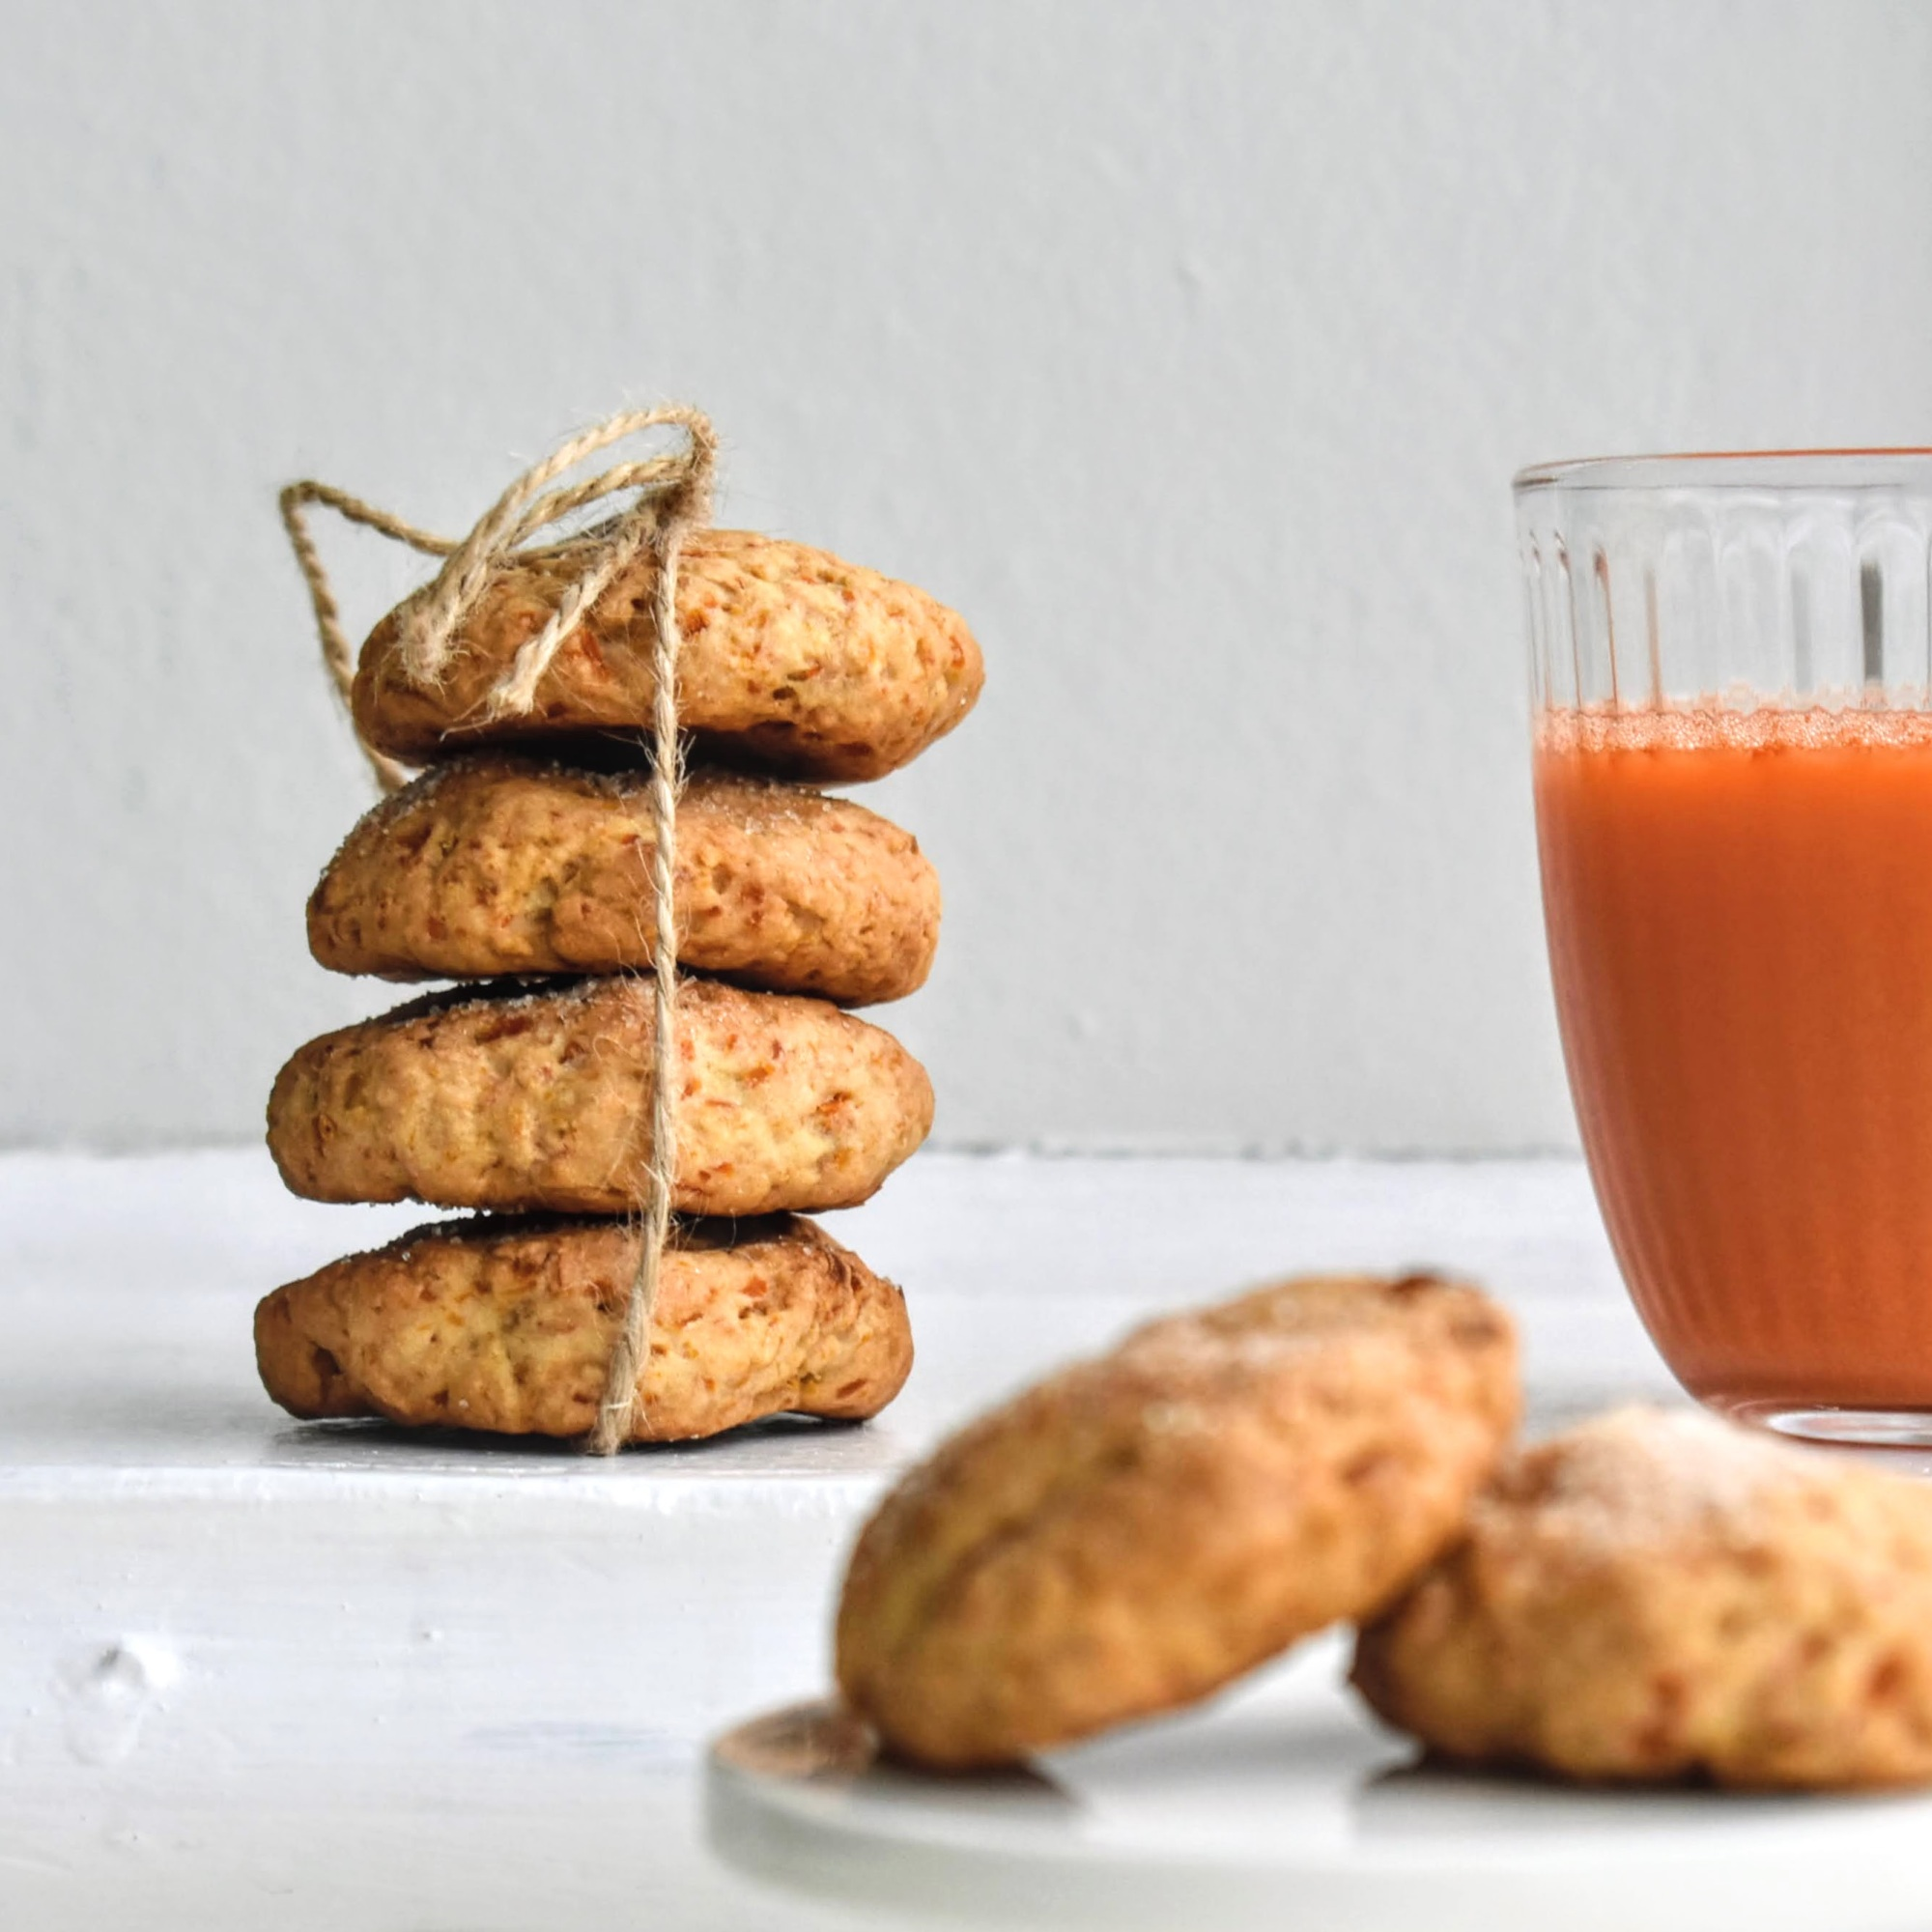 BISCUITS with LEFTOVER CARROT and JUICE PULP